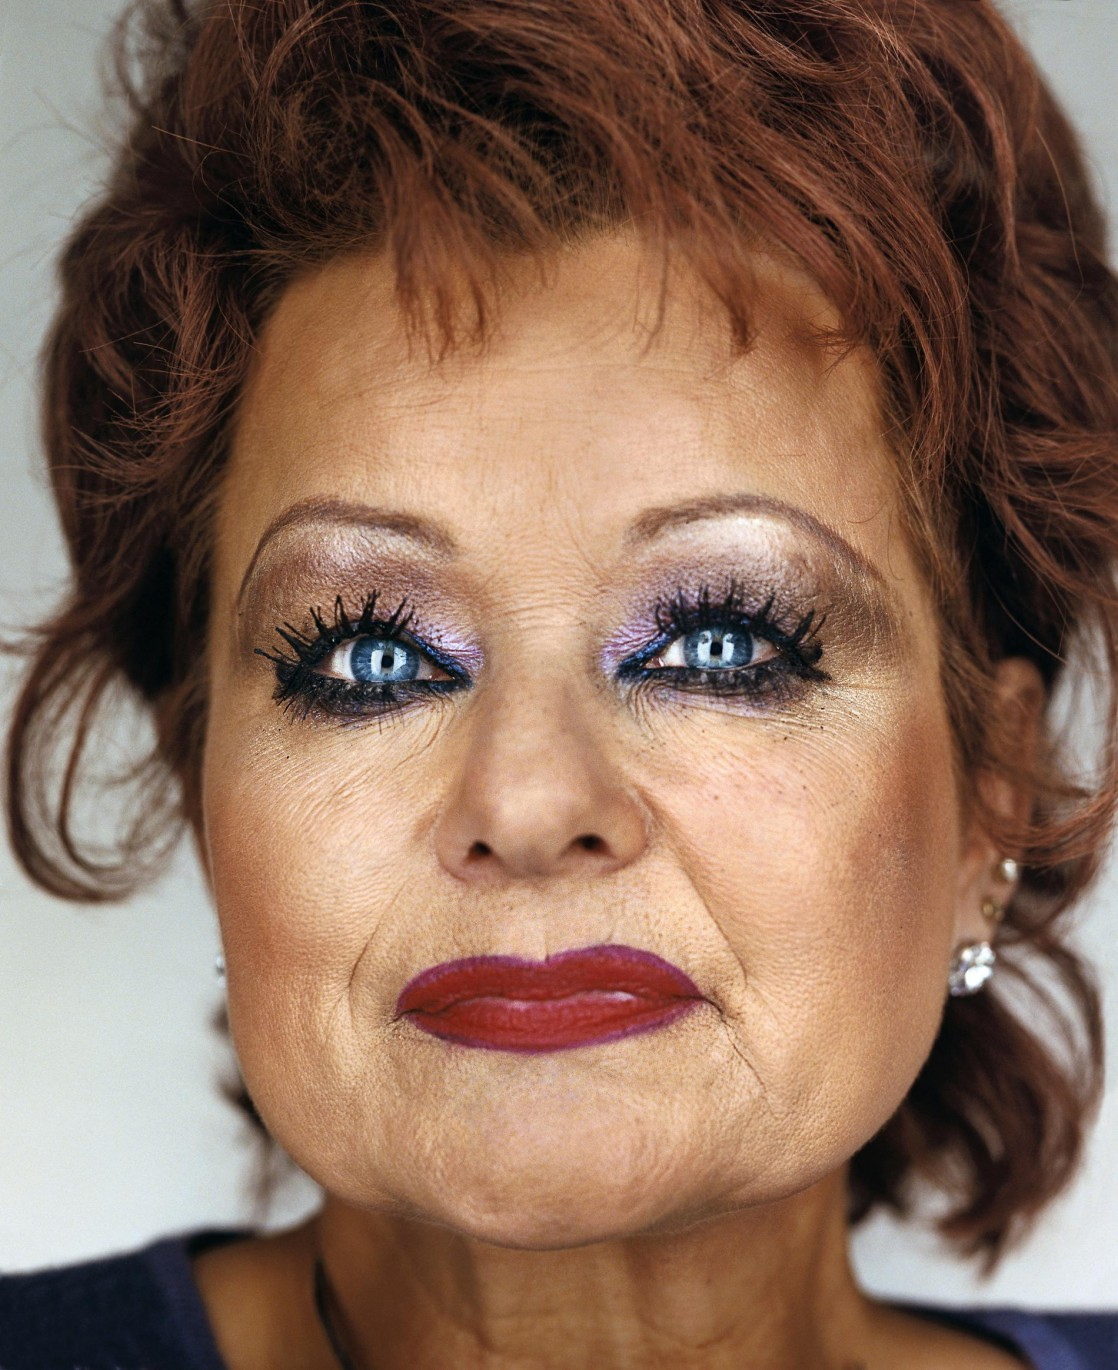 The trials and resilience of Tammy Faye Bakker